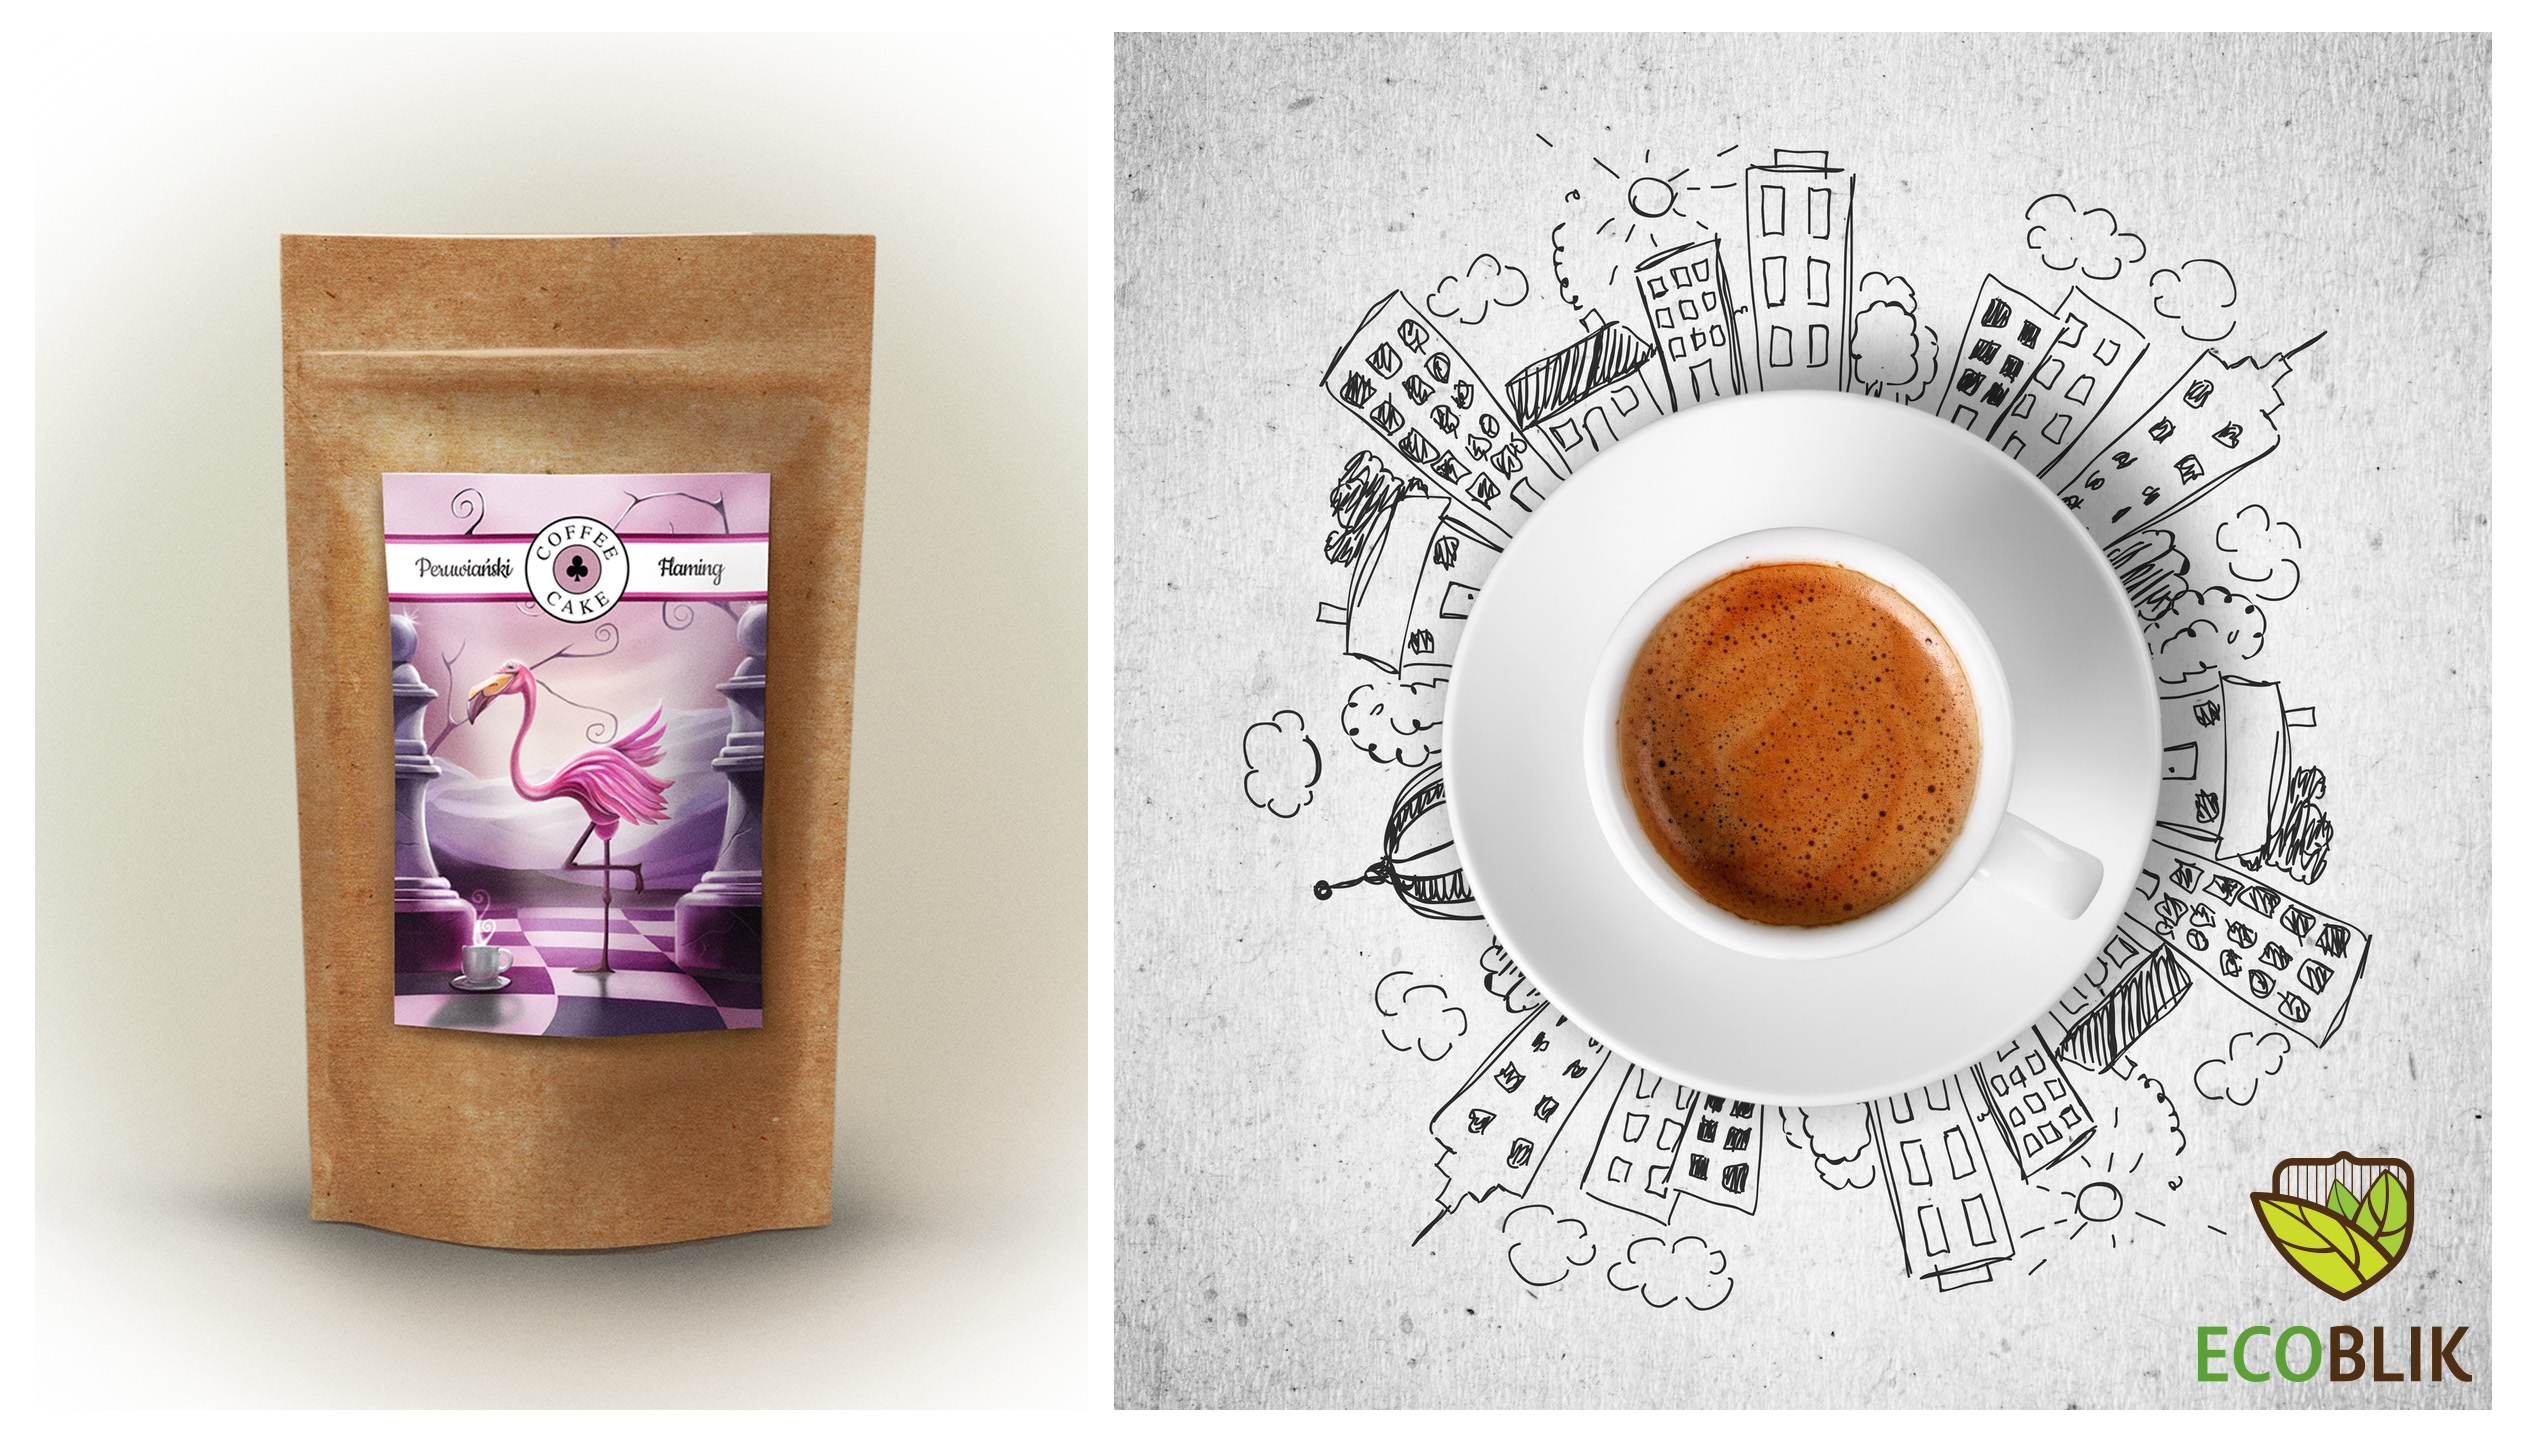 coffee Peruvian Flamingo packaging and a cup of coffee